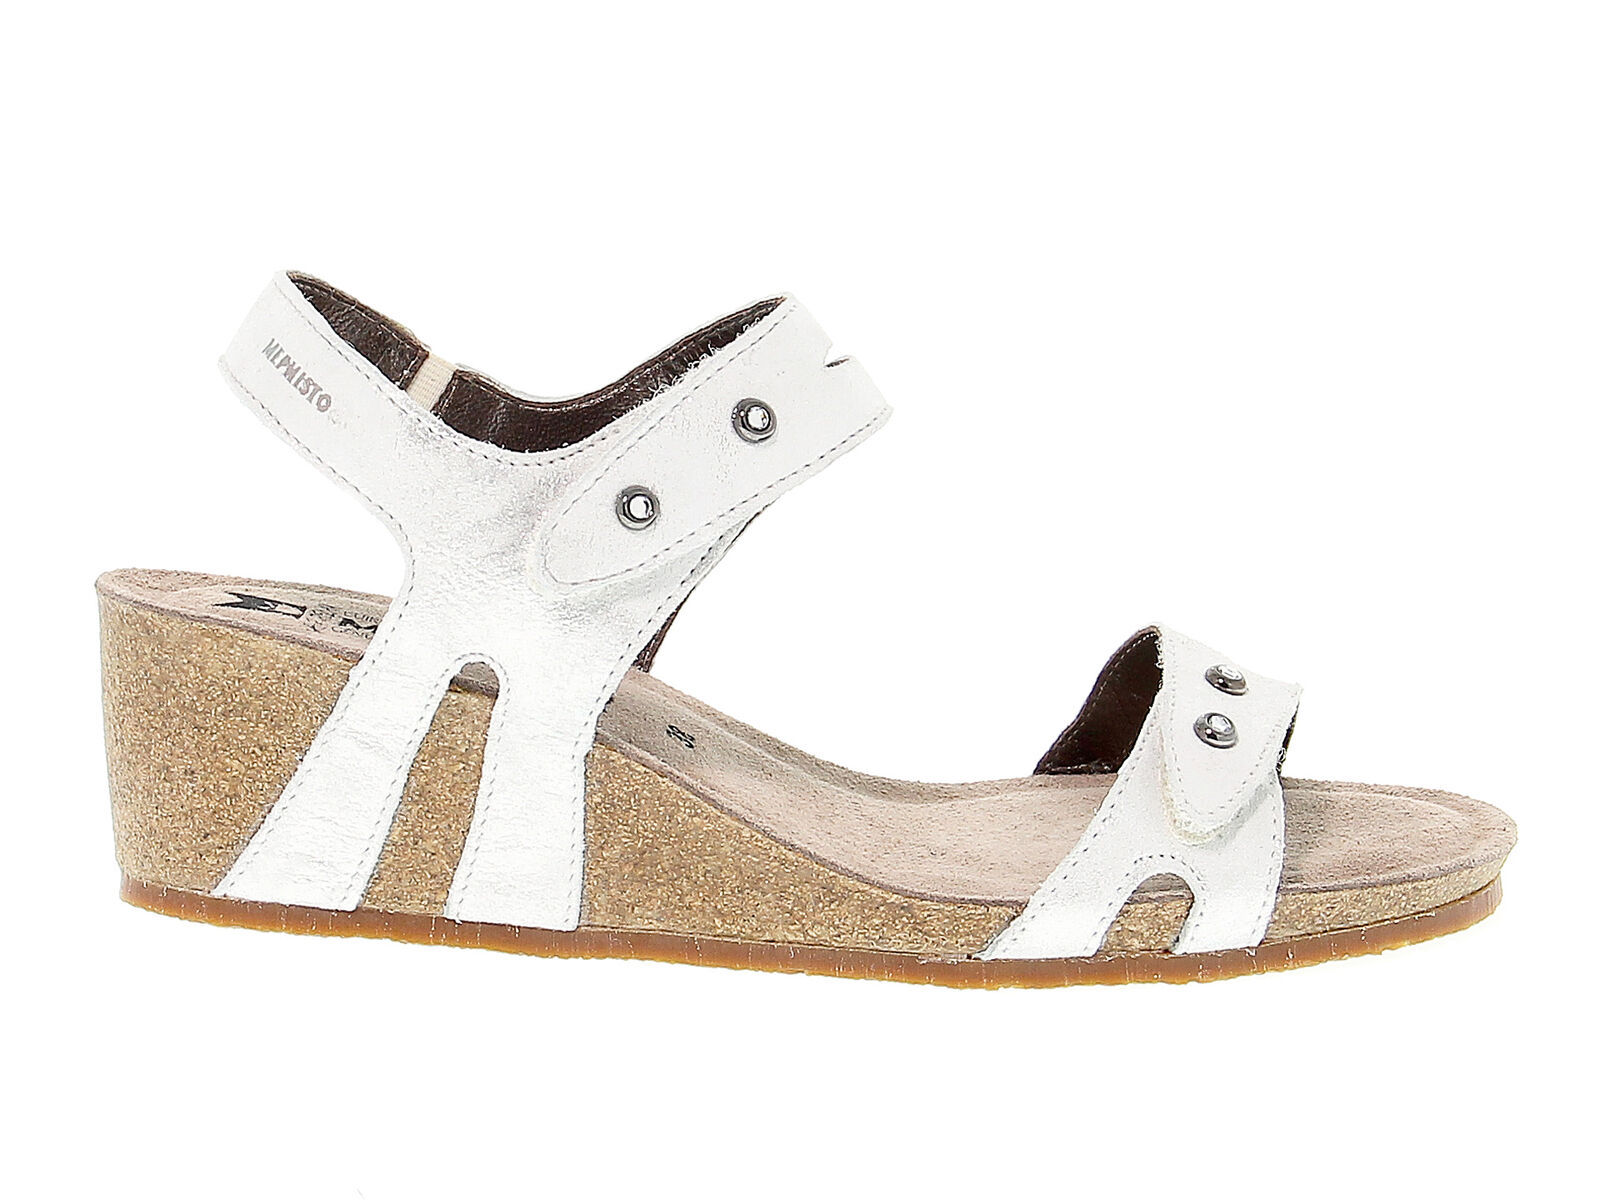 Heeled sandal MEPHISTO MINOA A in silver suede leather - Women's Shoes